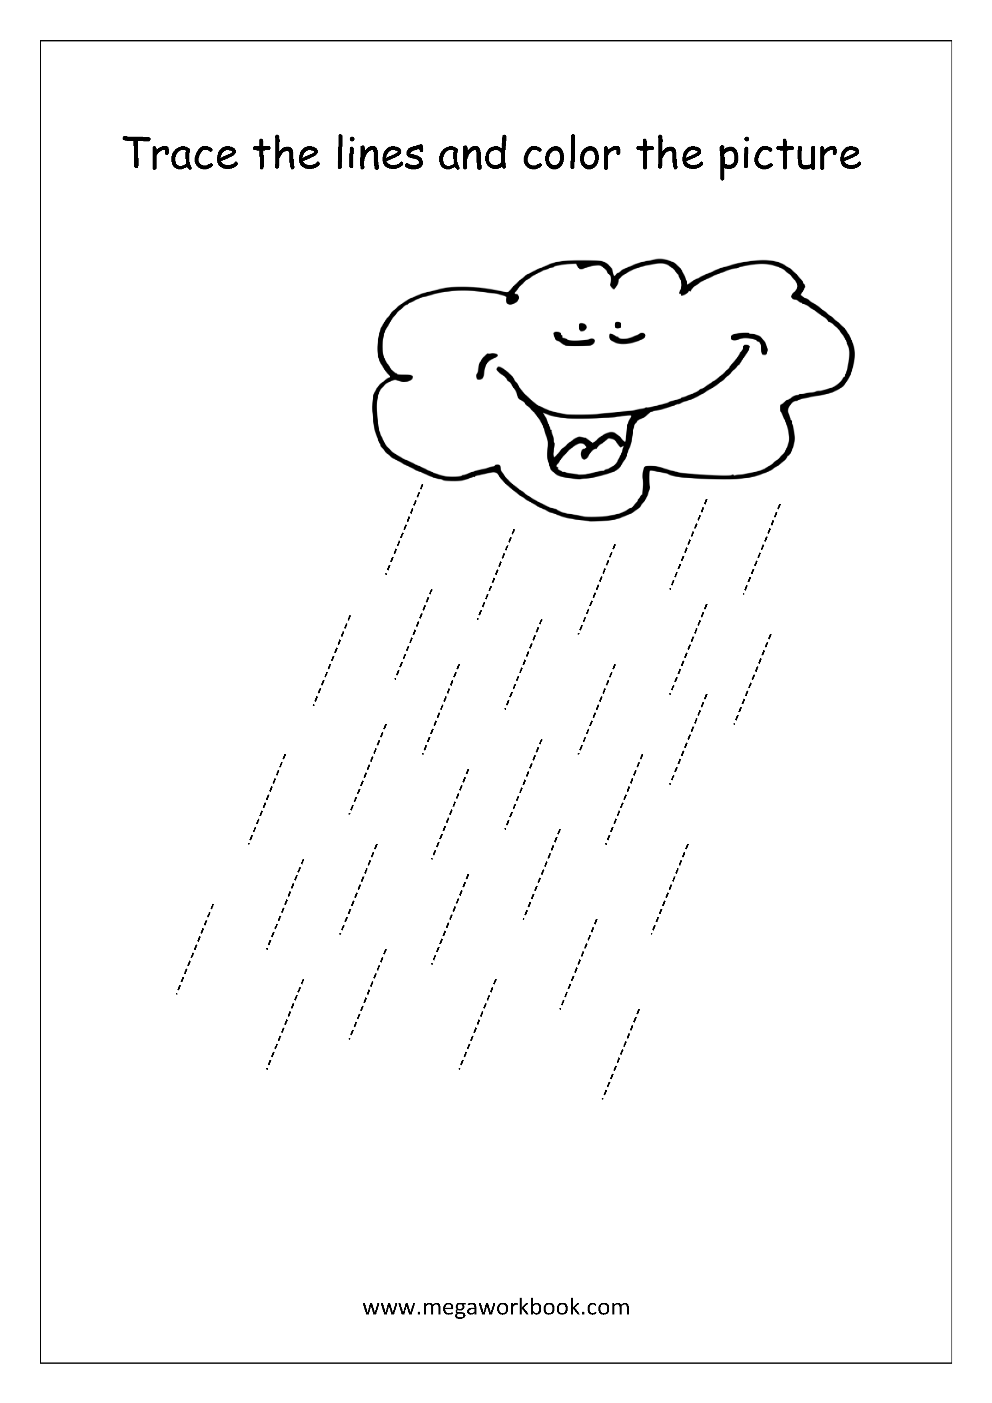 rain printable kindergarten worksheets rain best free printable worksheets. Black Bedroom Furniture Sets. Home Design Ideas